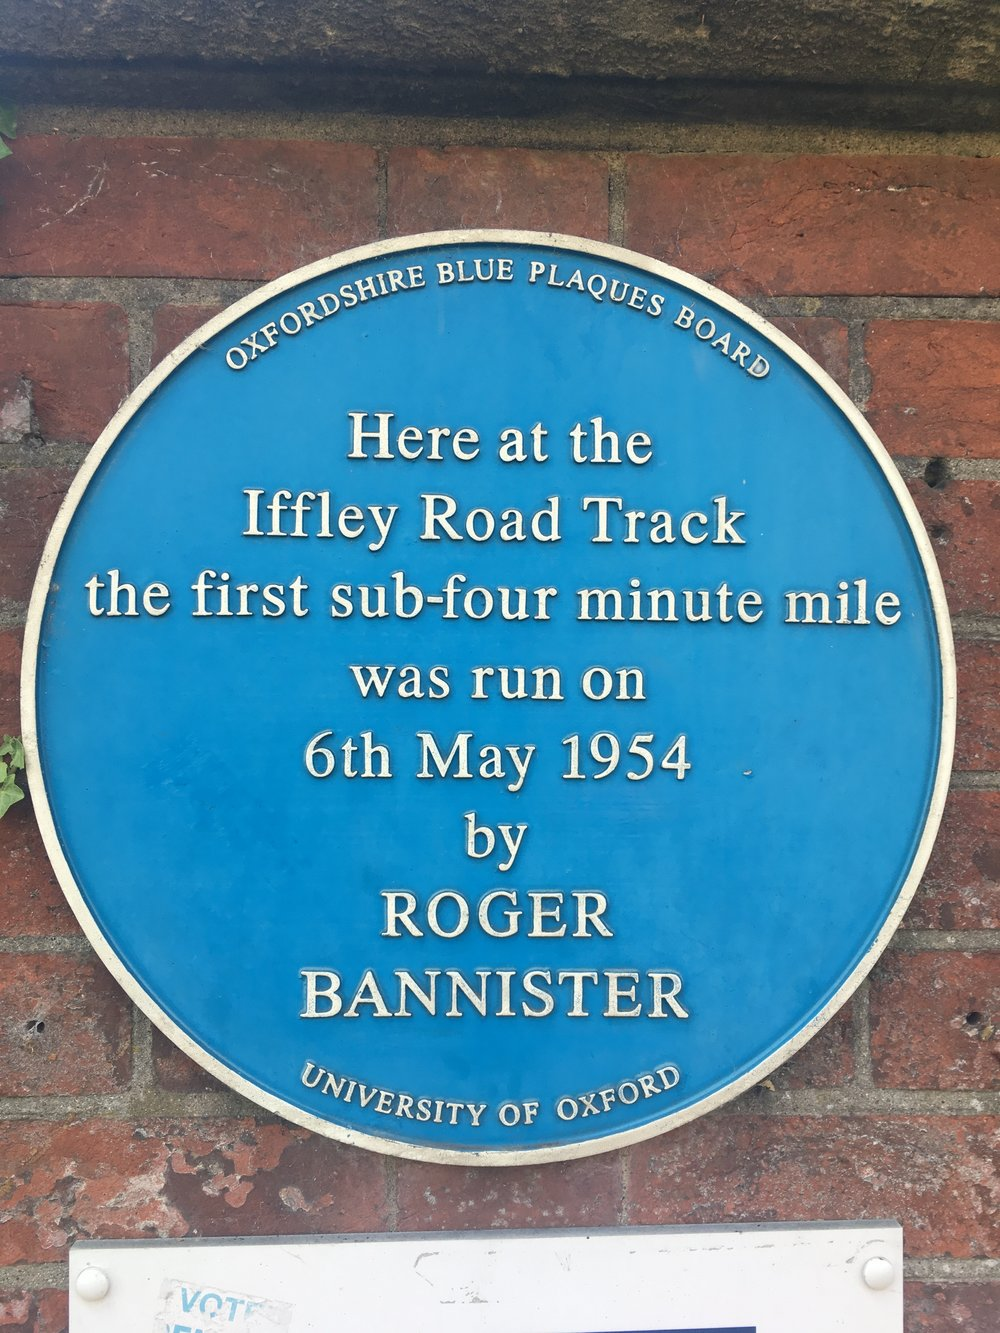 roger bannister blue plaque in cowley in oxford.JPG